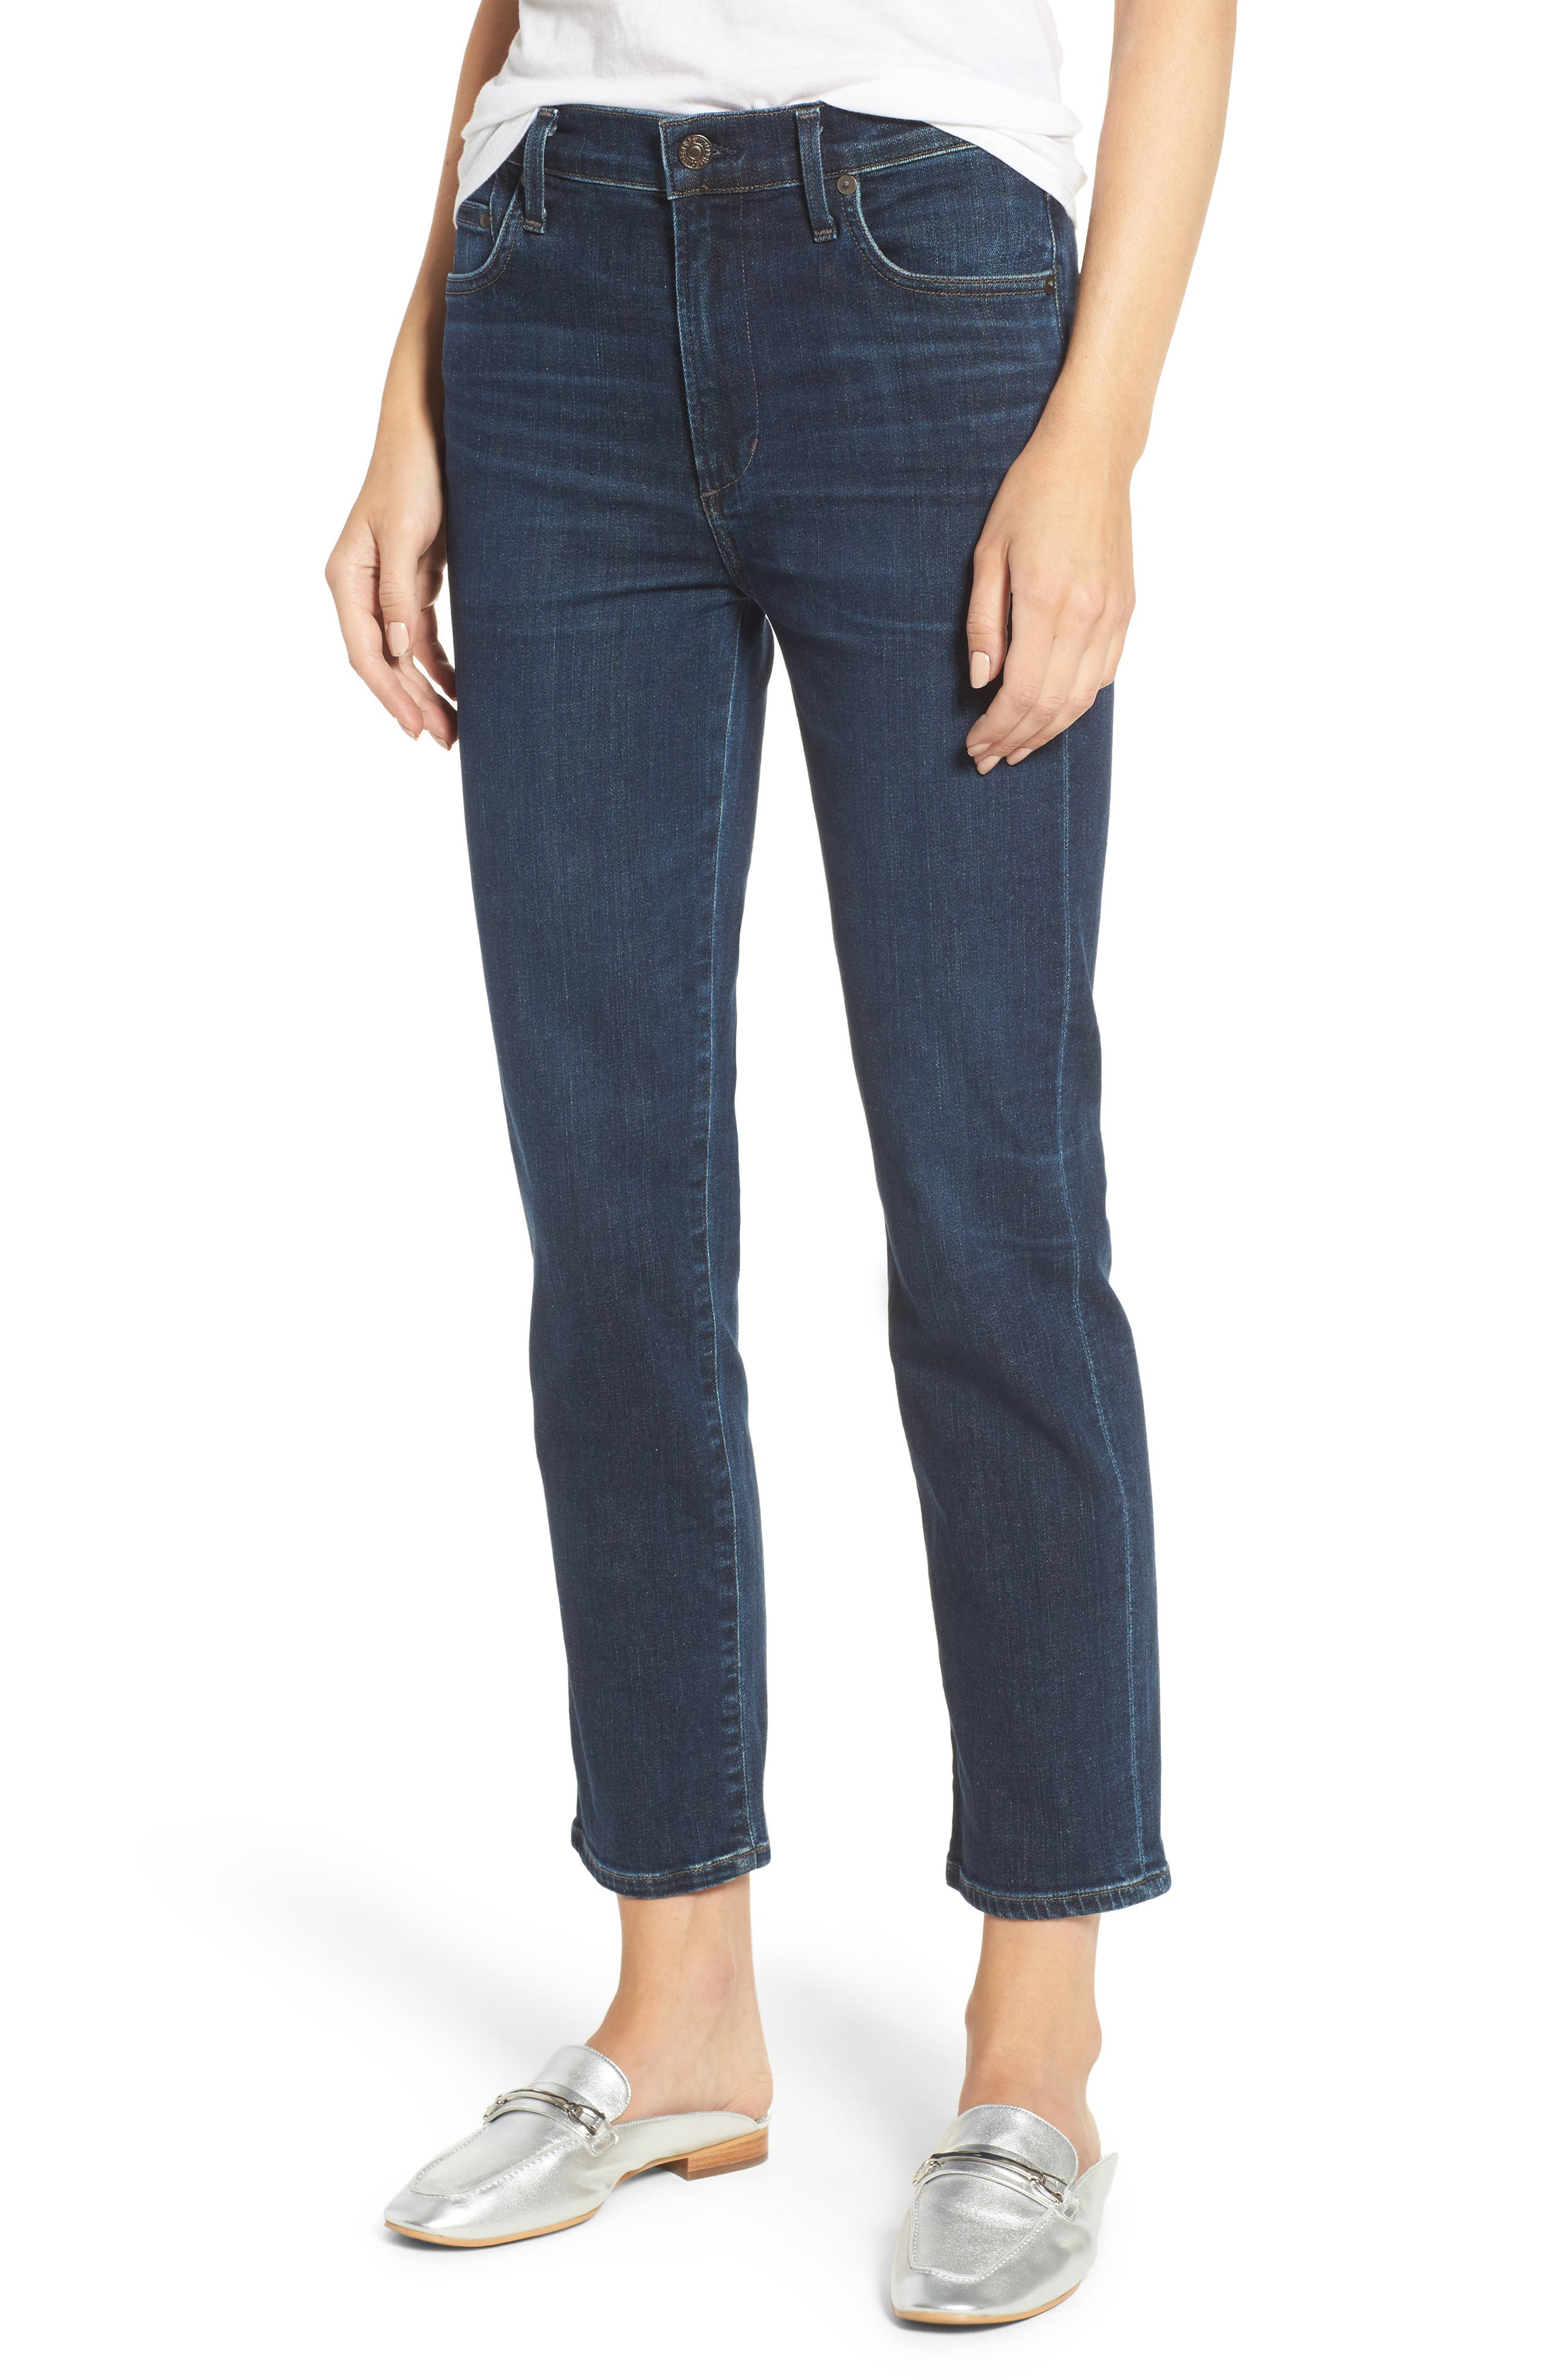 Citizens of Humanity Cara Ankle Cigarette Jeans (Marisol)